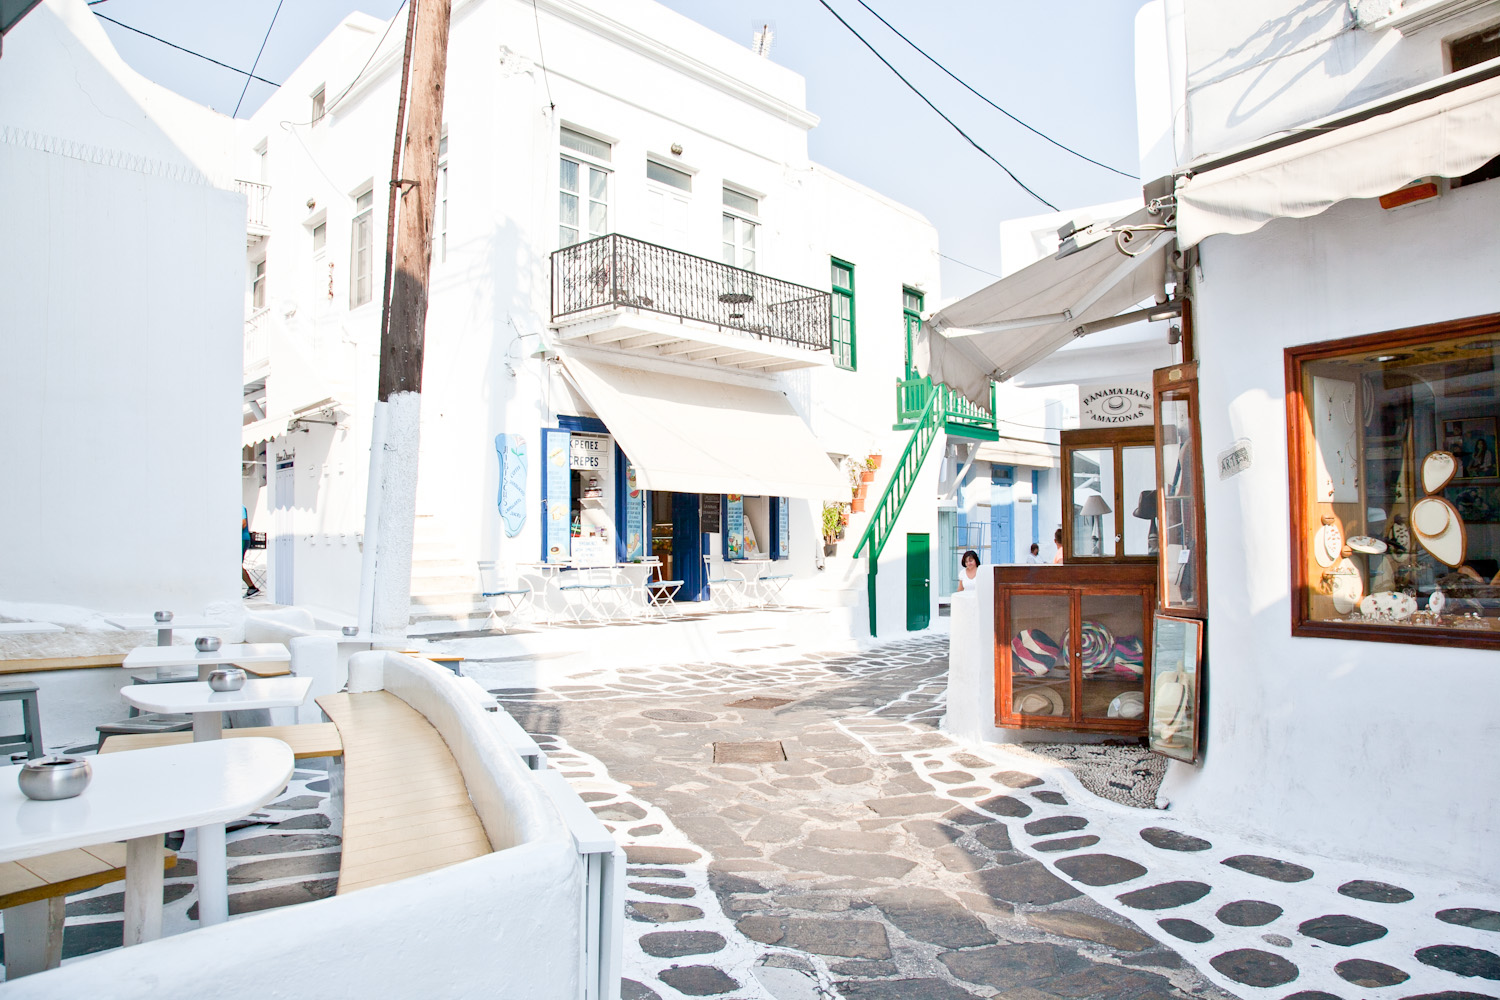 IMG_3775-mykonos-greece-cruise-day-trip-travel-trisa-taro.jpg